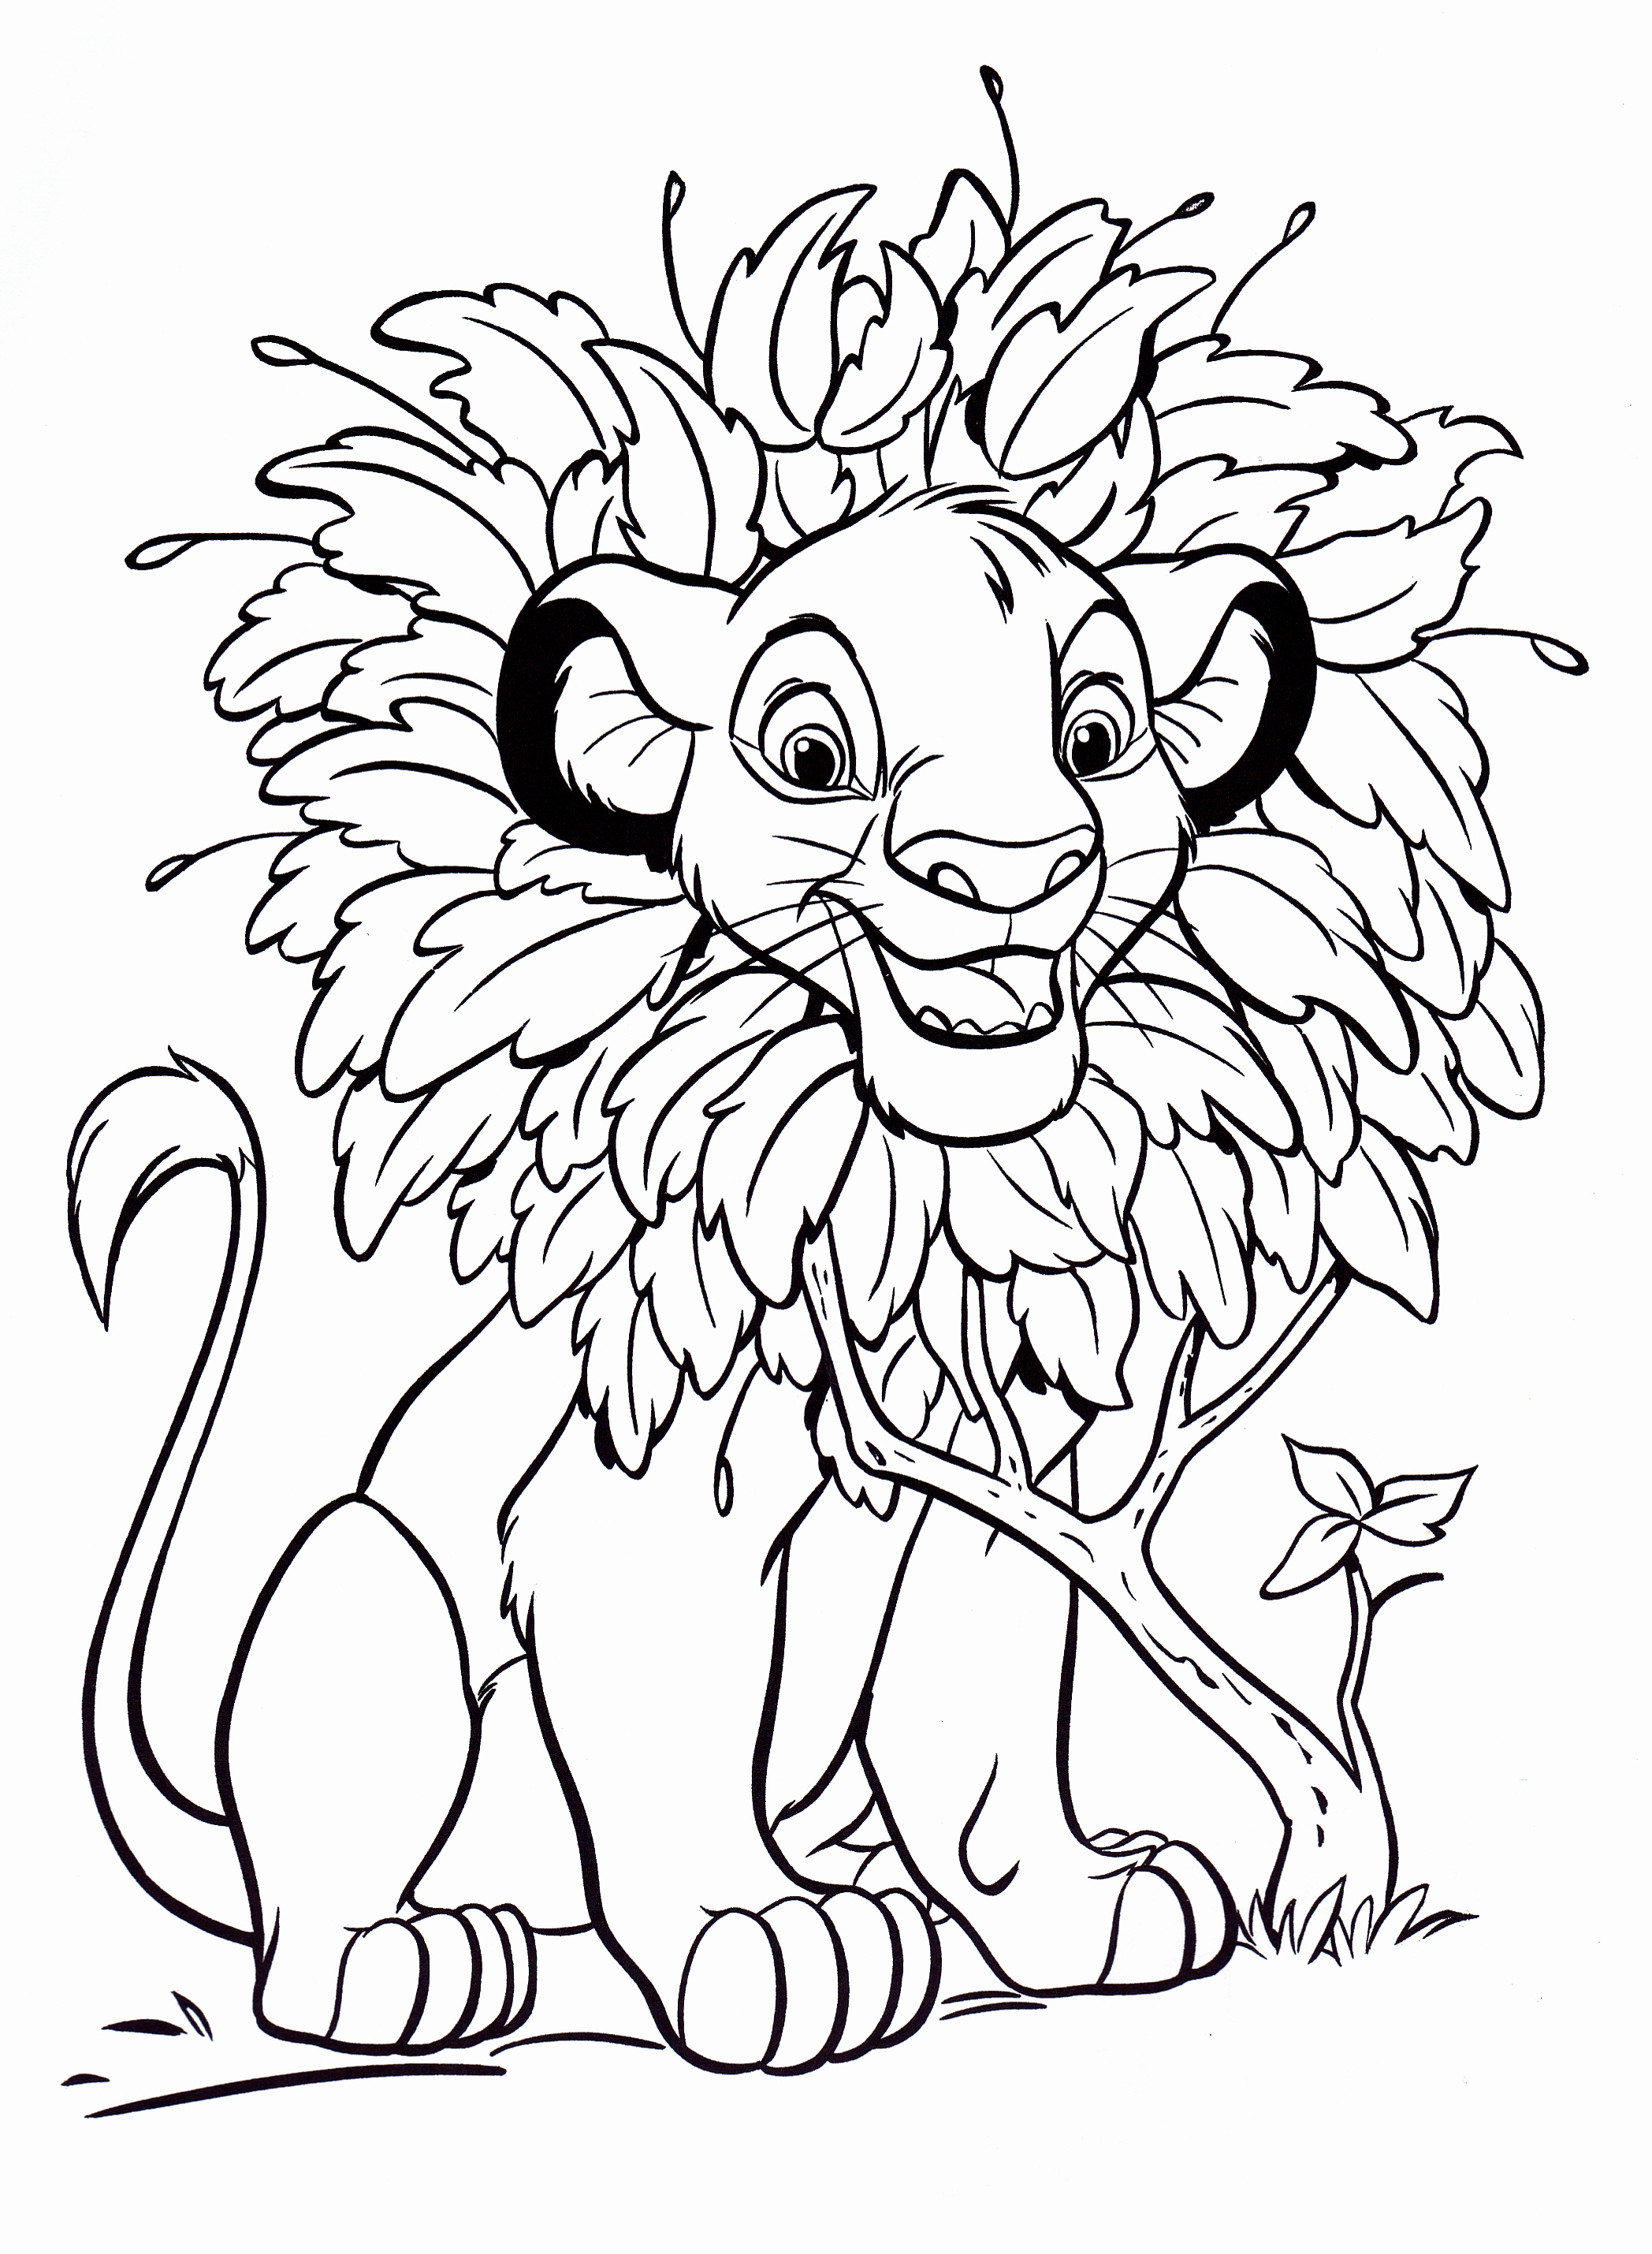 Free printable simba coloring pages for kids for Disney coloring pages free printable